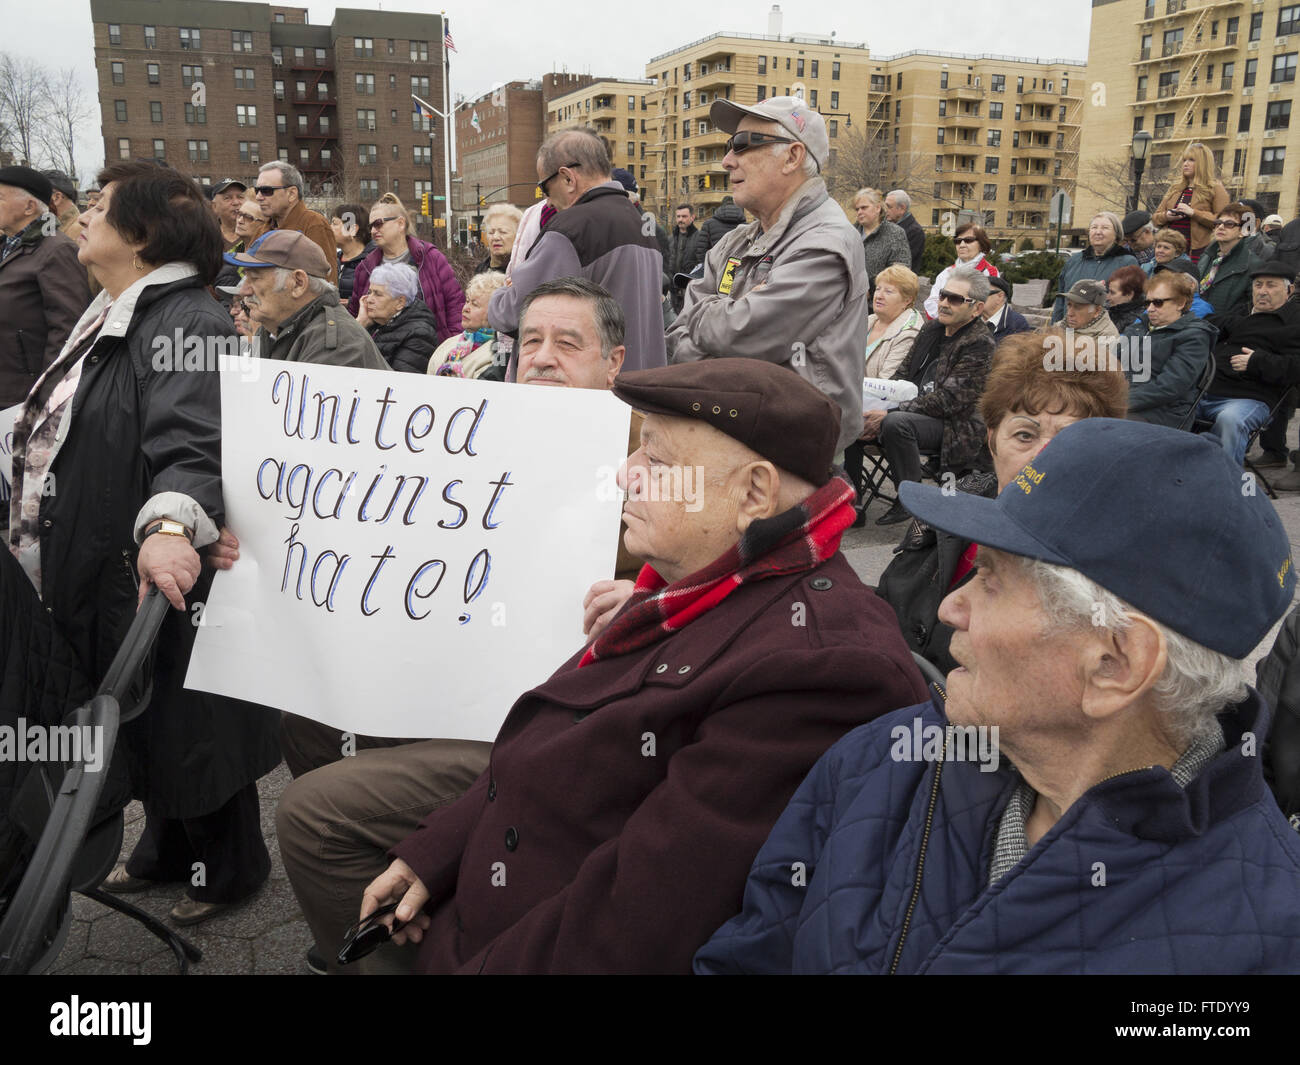 Rally against hatred and anti-semitism at the Holocaust Memorial Park in Sheepshead Bay in Brooklyn, NY, March 13, - Stock Image